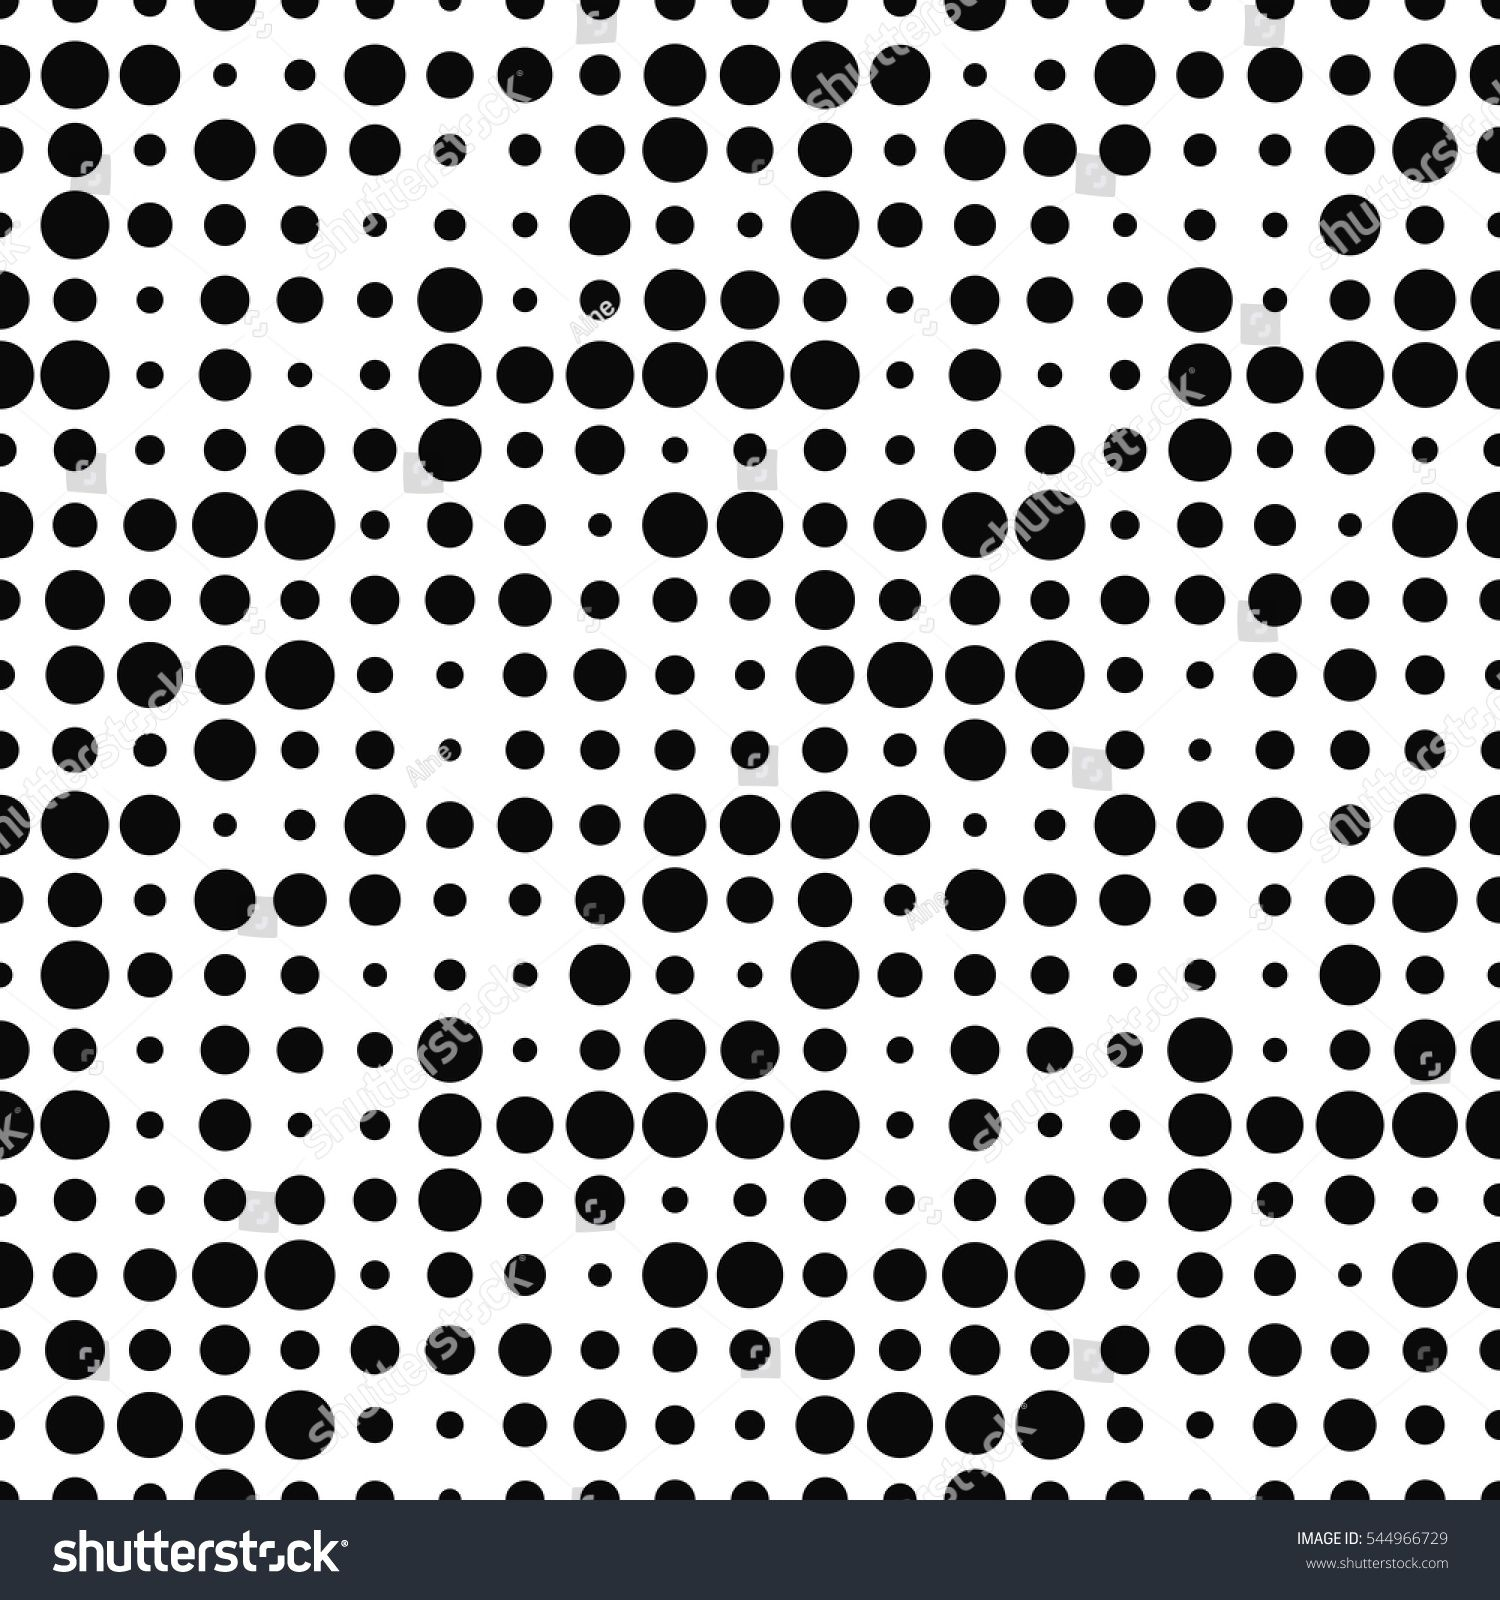 Black And White Halftone Seamless Pattern With Circles Dotted